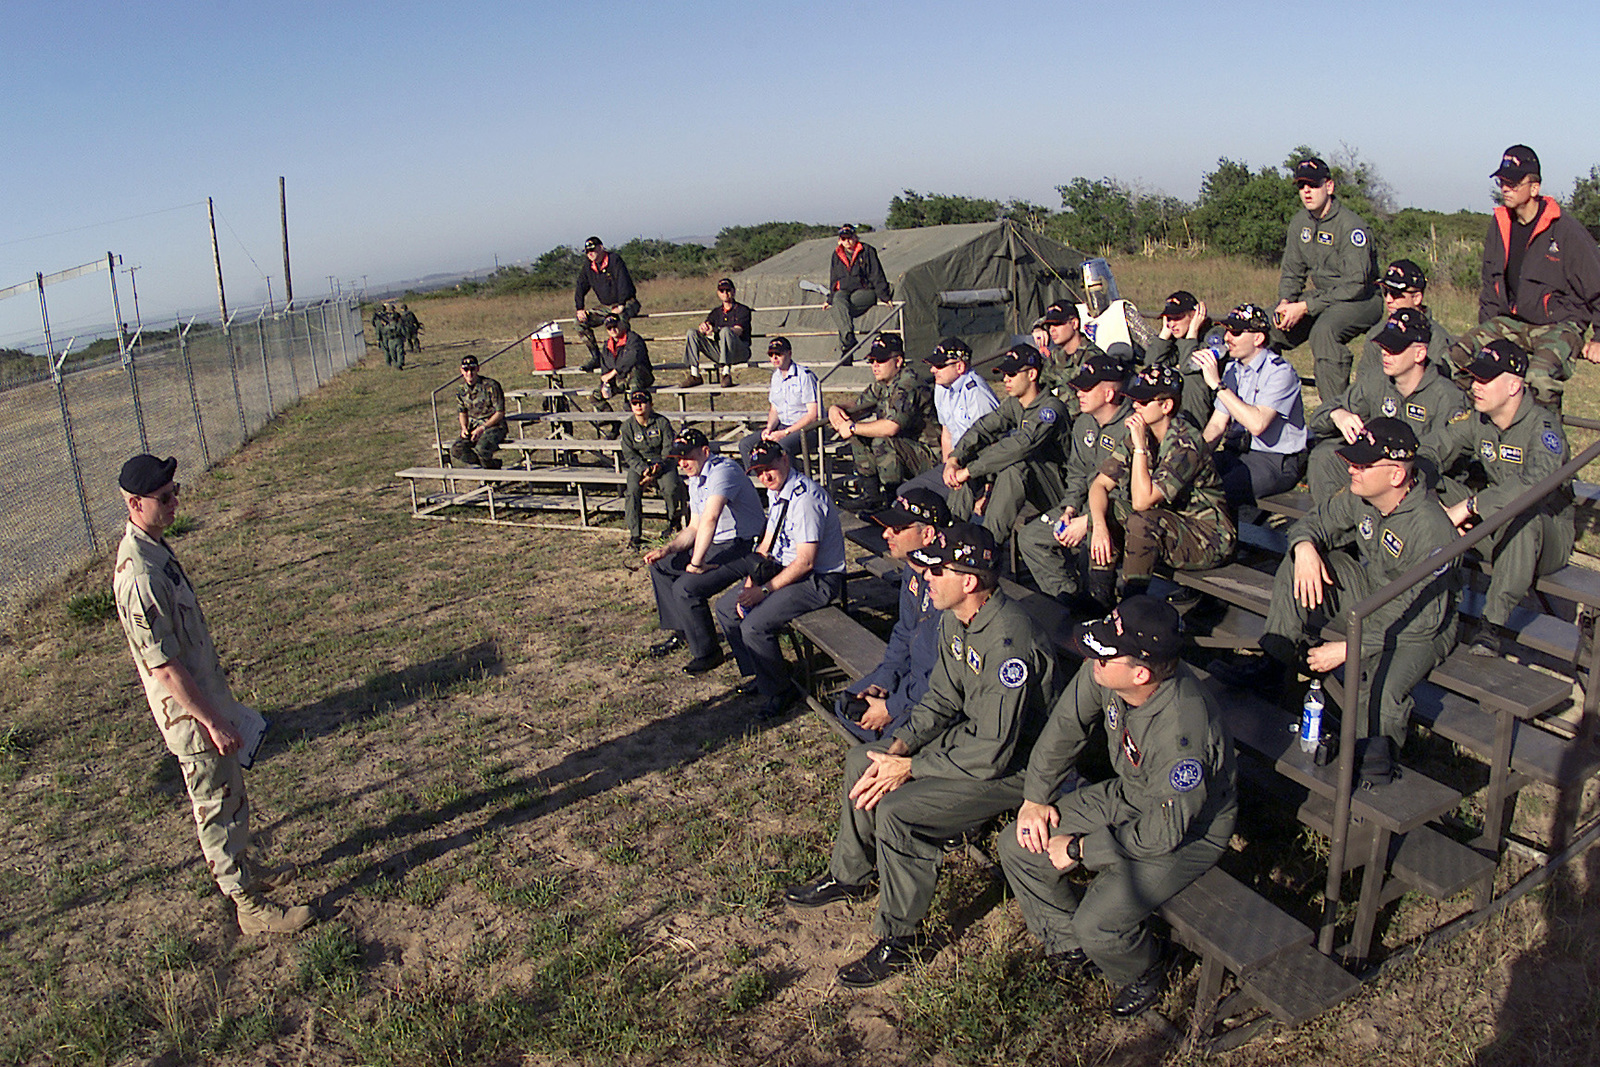 "STAFF Sergeant Mark Tipton, USAF, 20th Air Force Security Forces, F.E. Warren Air Force Base, Wyoming, briefs the 21st Space Wing ""Knights,"" Peterson Air Force Base, Colorado, on what the security forces team will encounter at the tactics event, during GUARDIAN CHALLENGE 2001 at Vandenberg Air Force Base, California. GUARDIAN CHALLENGE, the world's premier space and missile competition, is a four-day event hosted annually at Vandenberg AFB, CA ""to recognize the best and demonstrate the commands warfighting skills. GUARDIAN CHALLENGE creates competition-tough crews; improves readiness and combat capabilities through preparation, innovation and sharing; enhances esprit de corps and..."